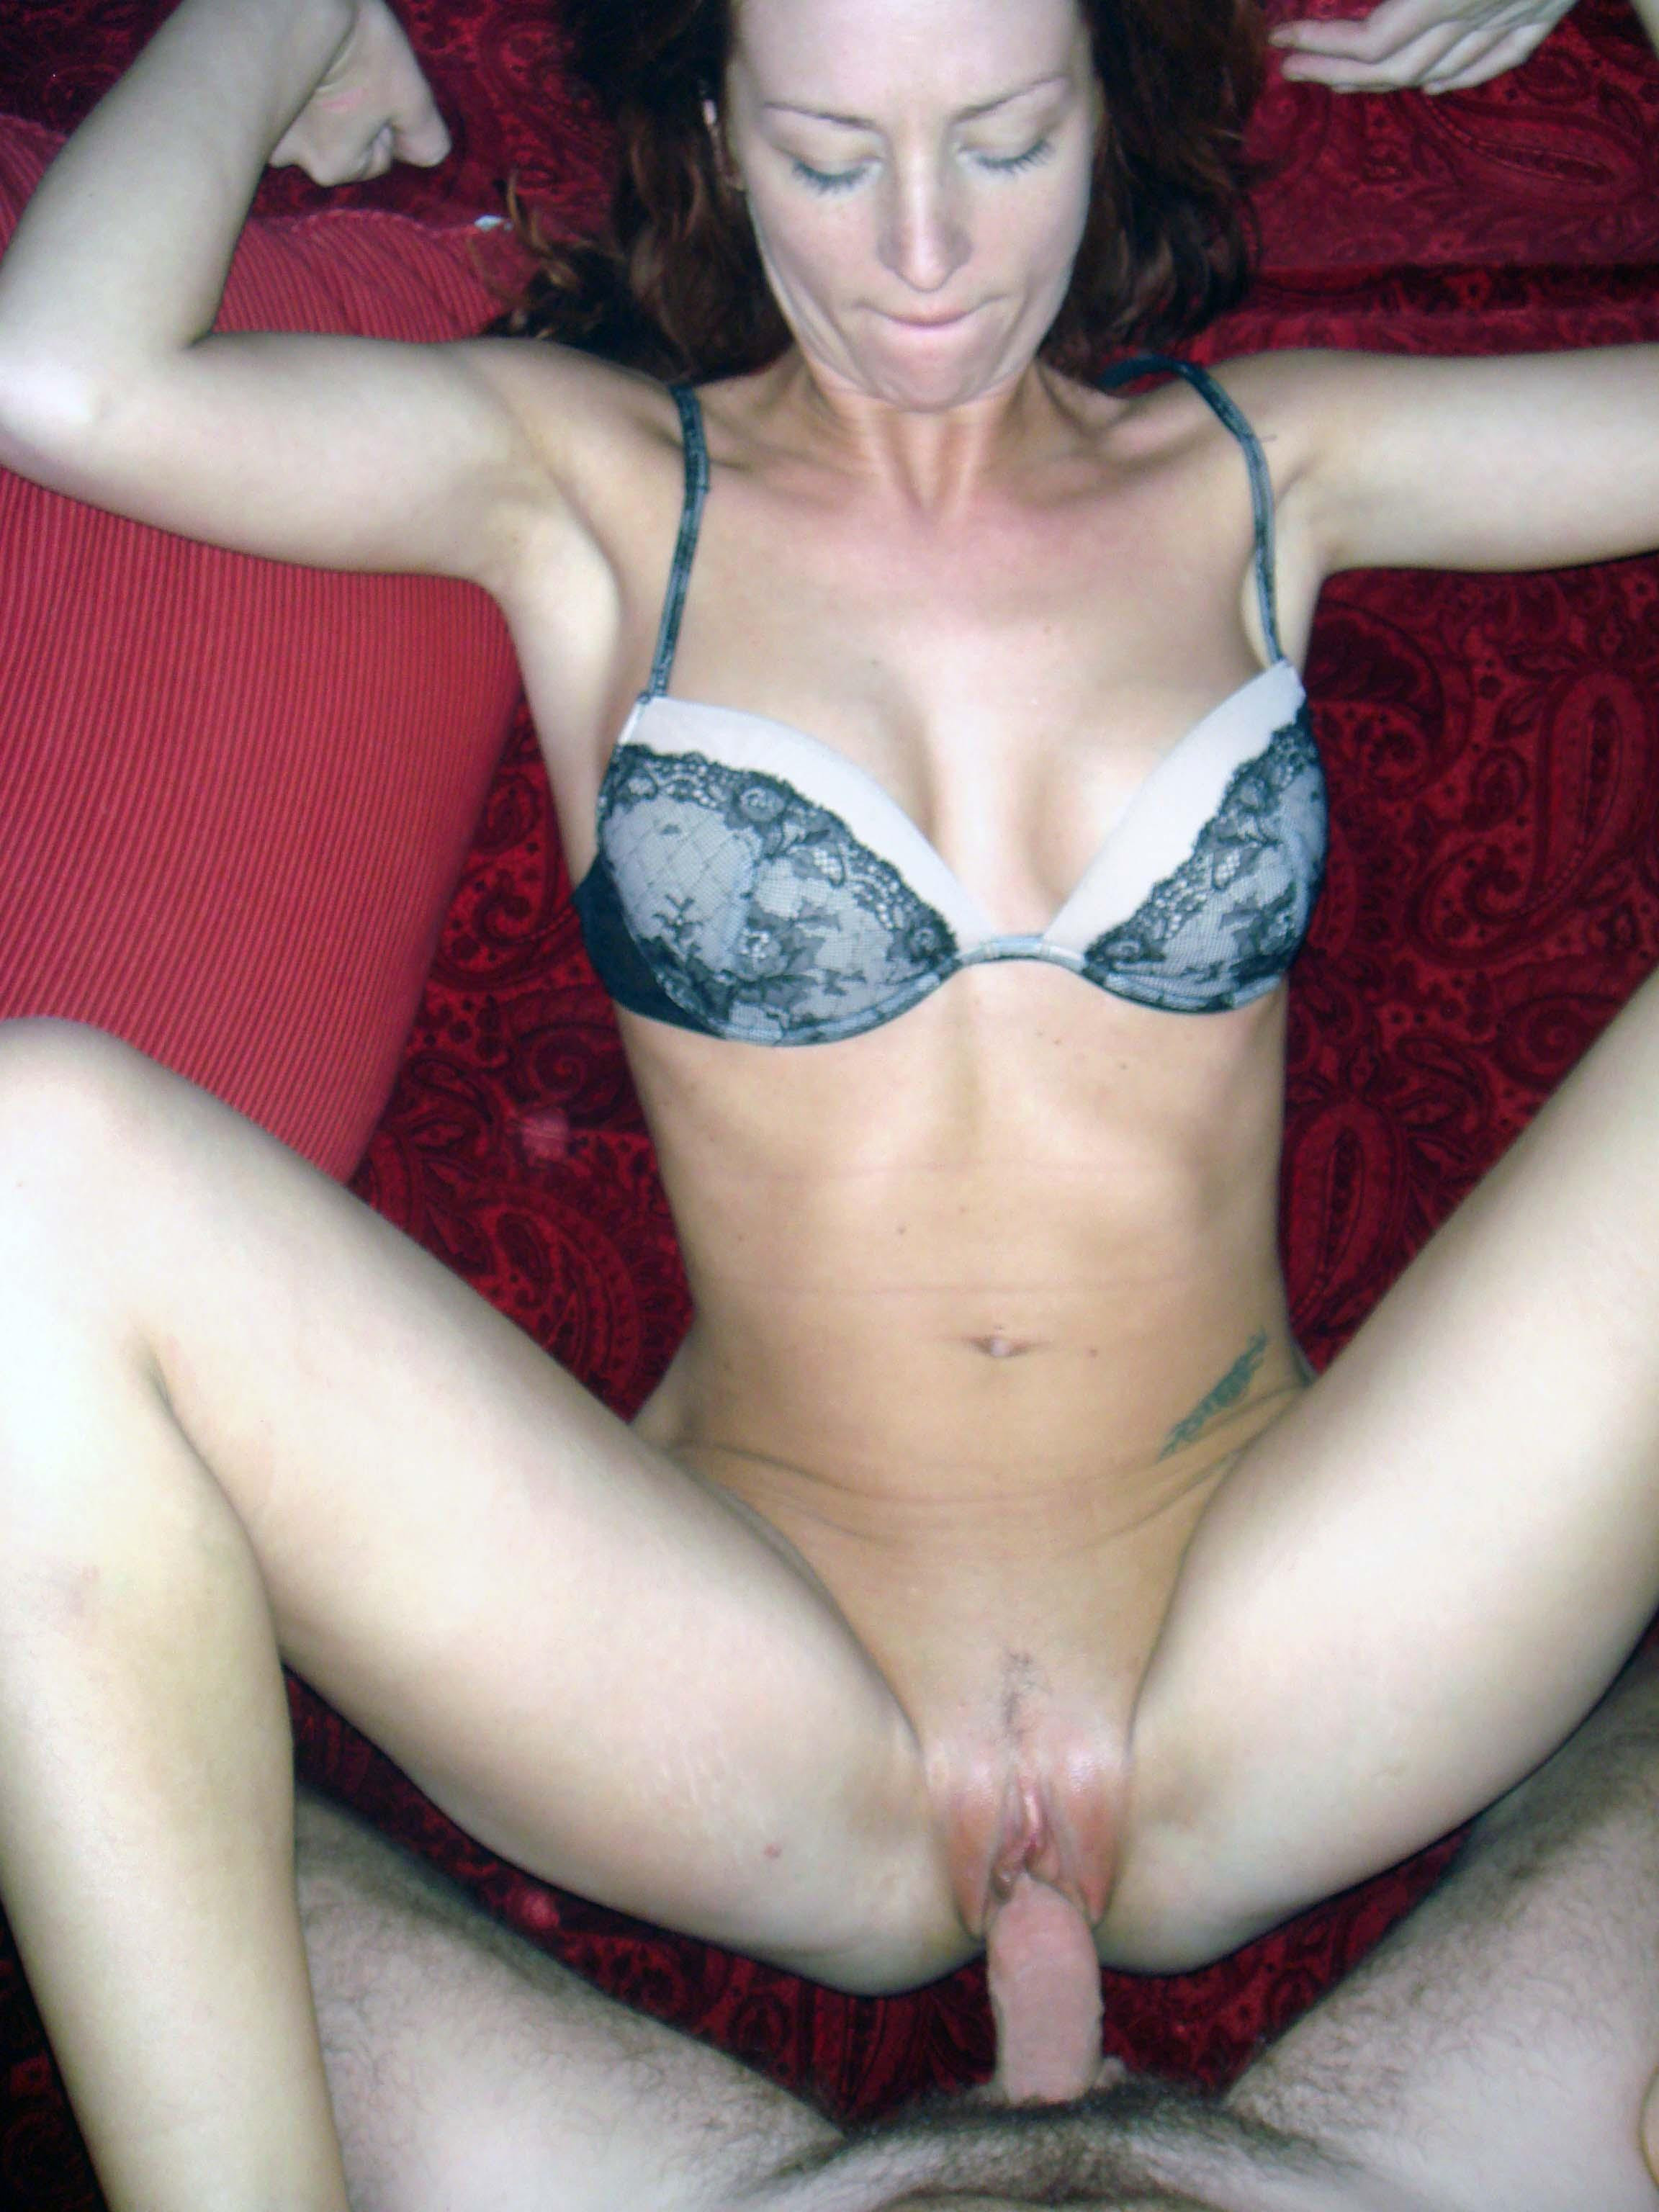 Bitch free milf wife gorgeous! Great